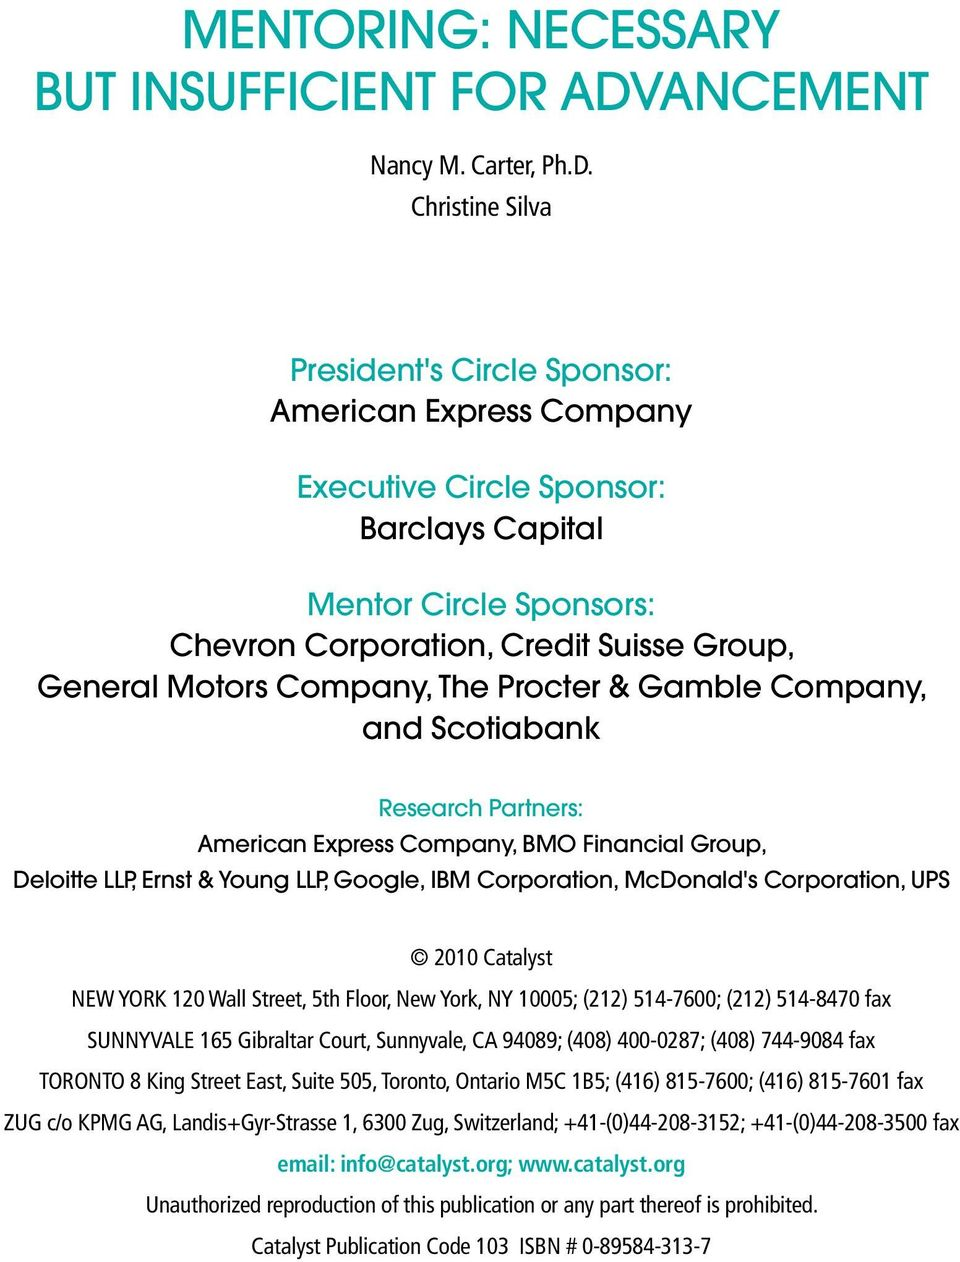 Christine Silva President's Circle Sponsor: American Express Company Executive Circle Sponsor: Barclays Capital Mentor Circle Sponsors: Chevron Corporation, Credit Suisse Group, General Motors